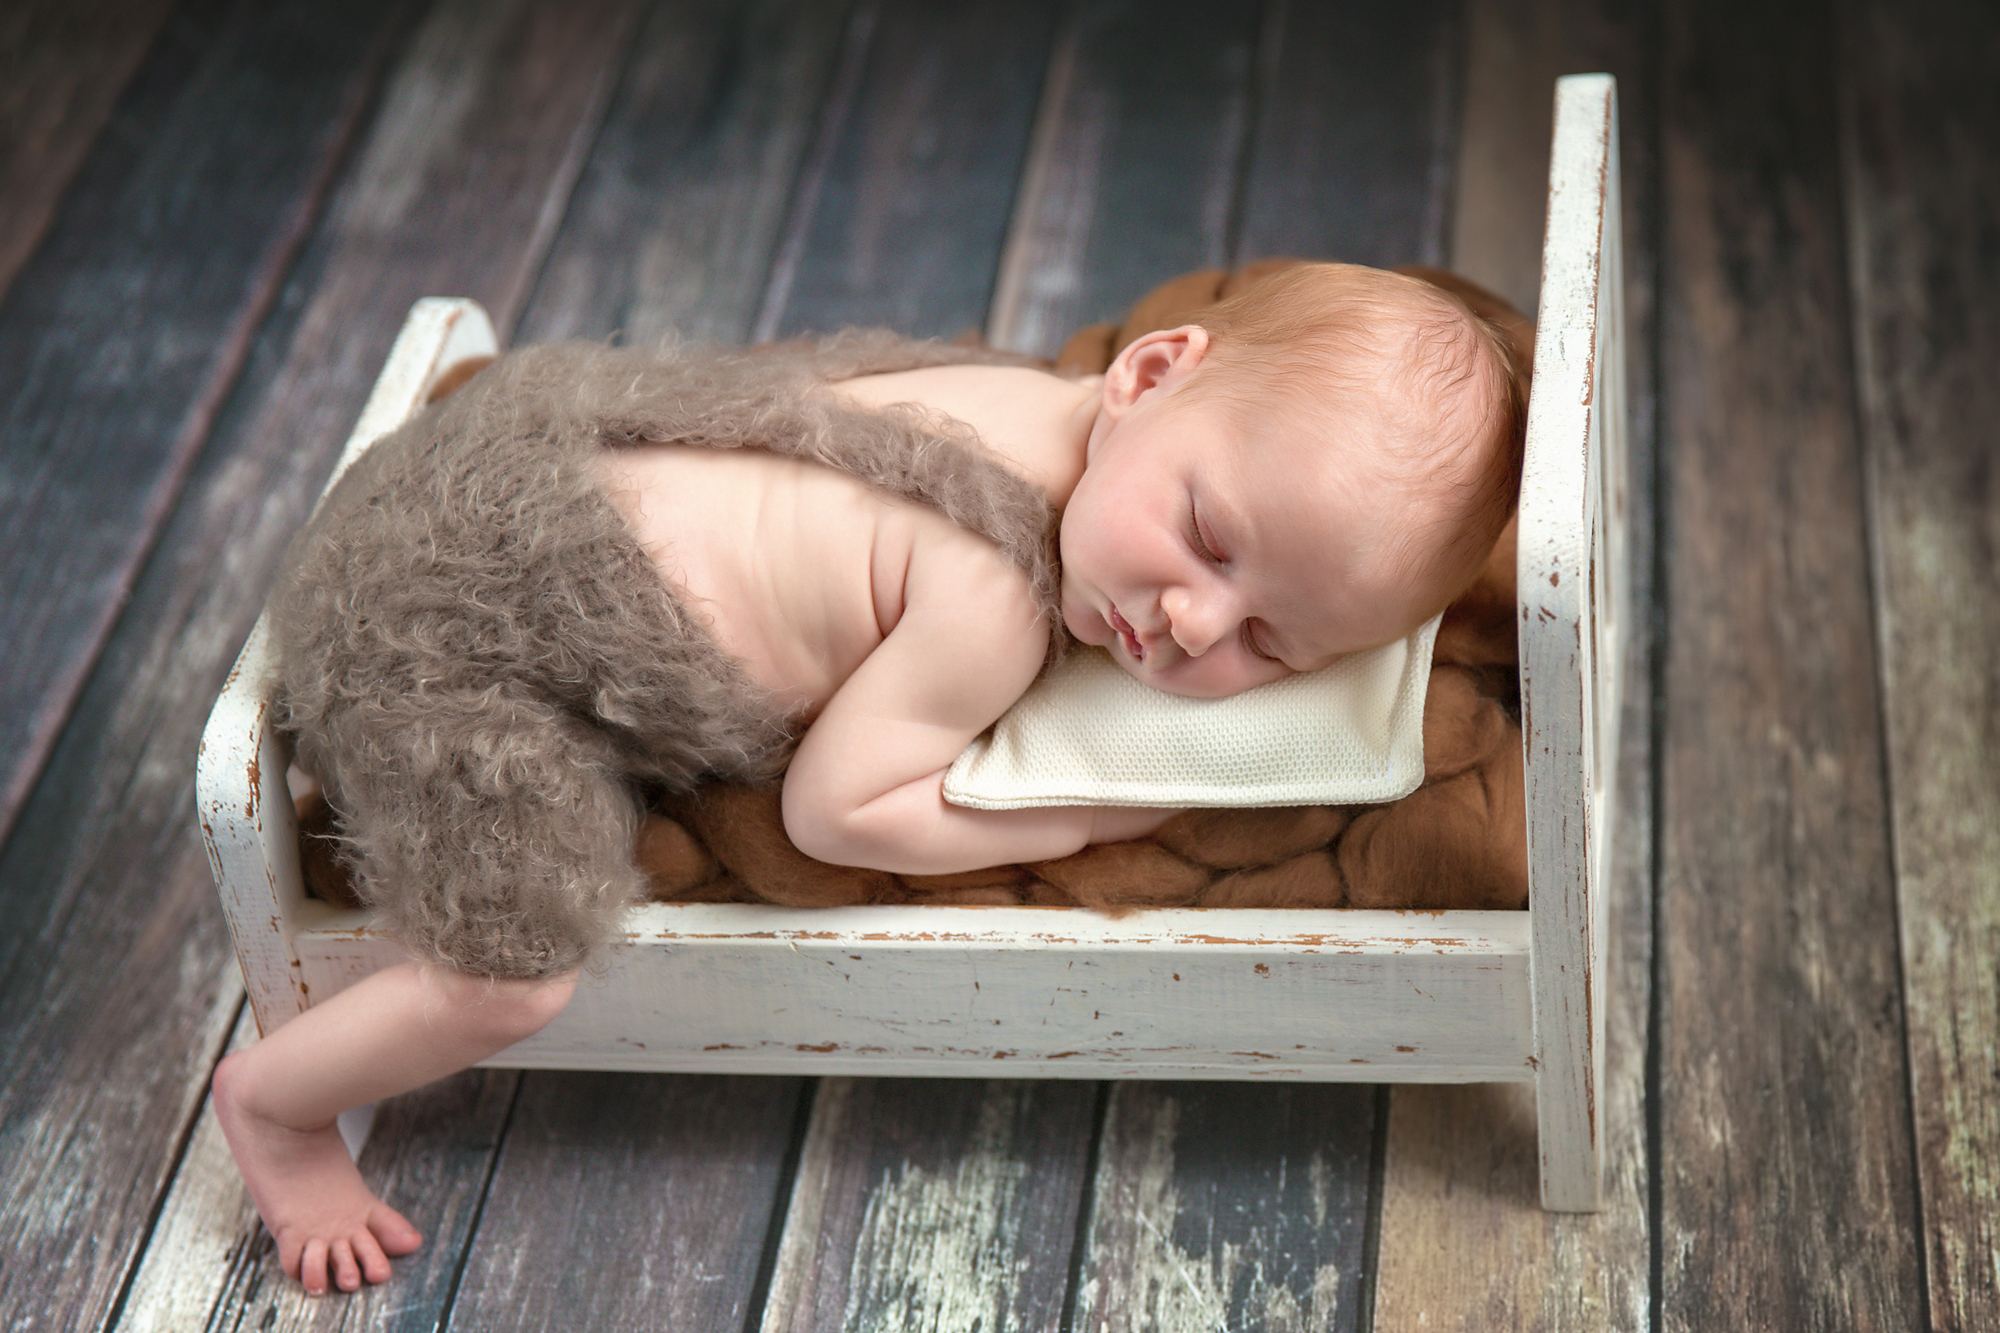 Baby boy is sleeping soundly on a little antique bed. Calgary Newborn and Baby photographer - Milashka Photography.